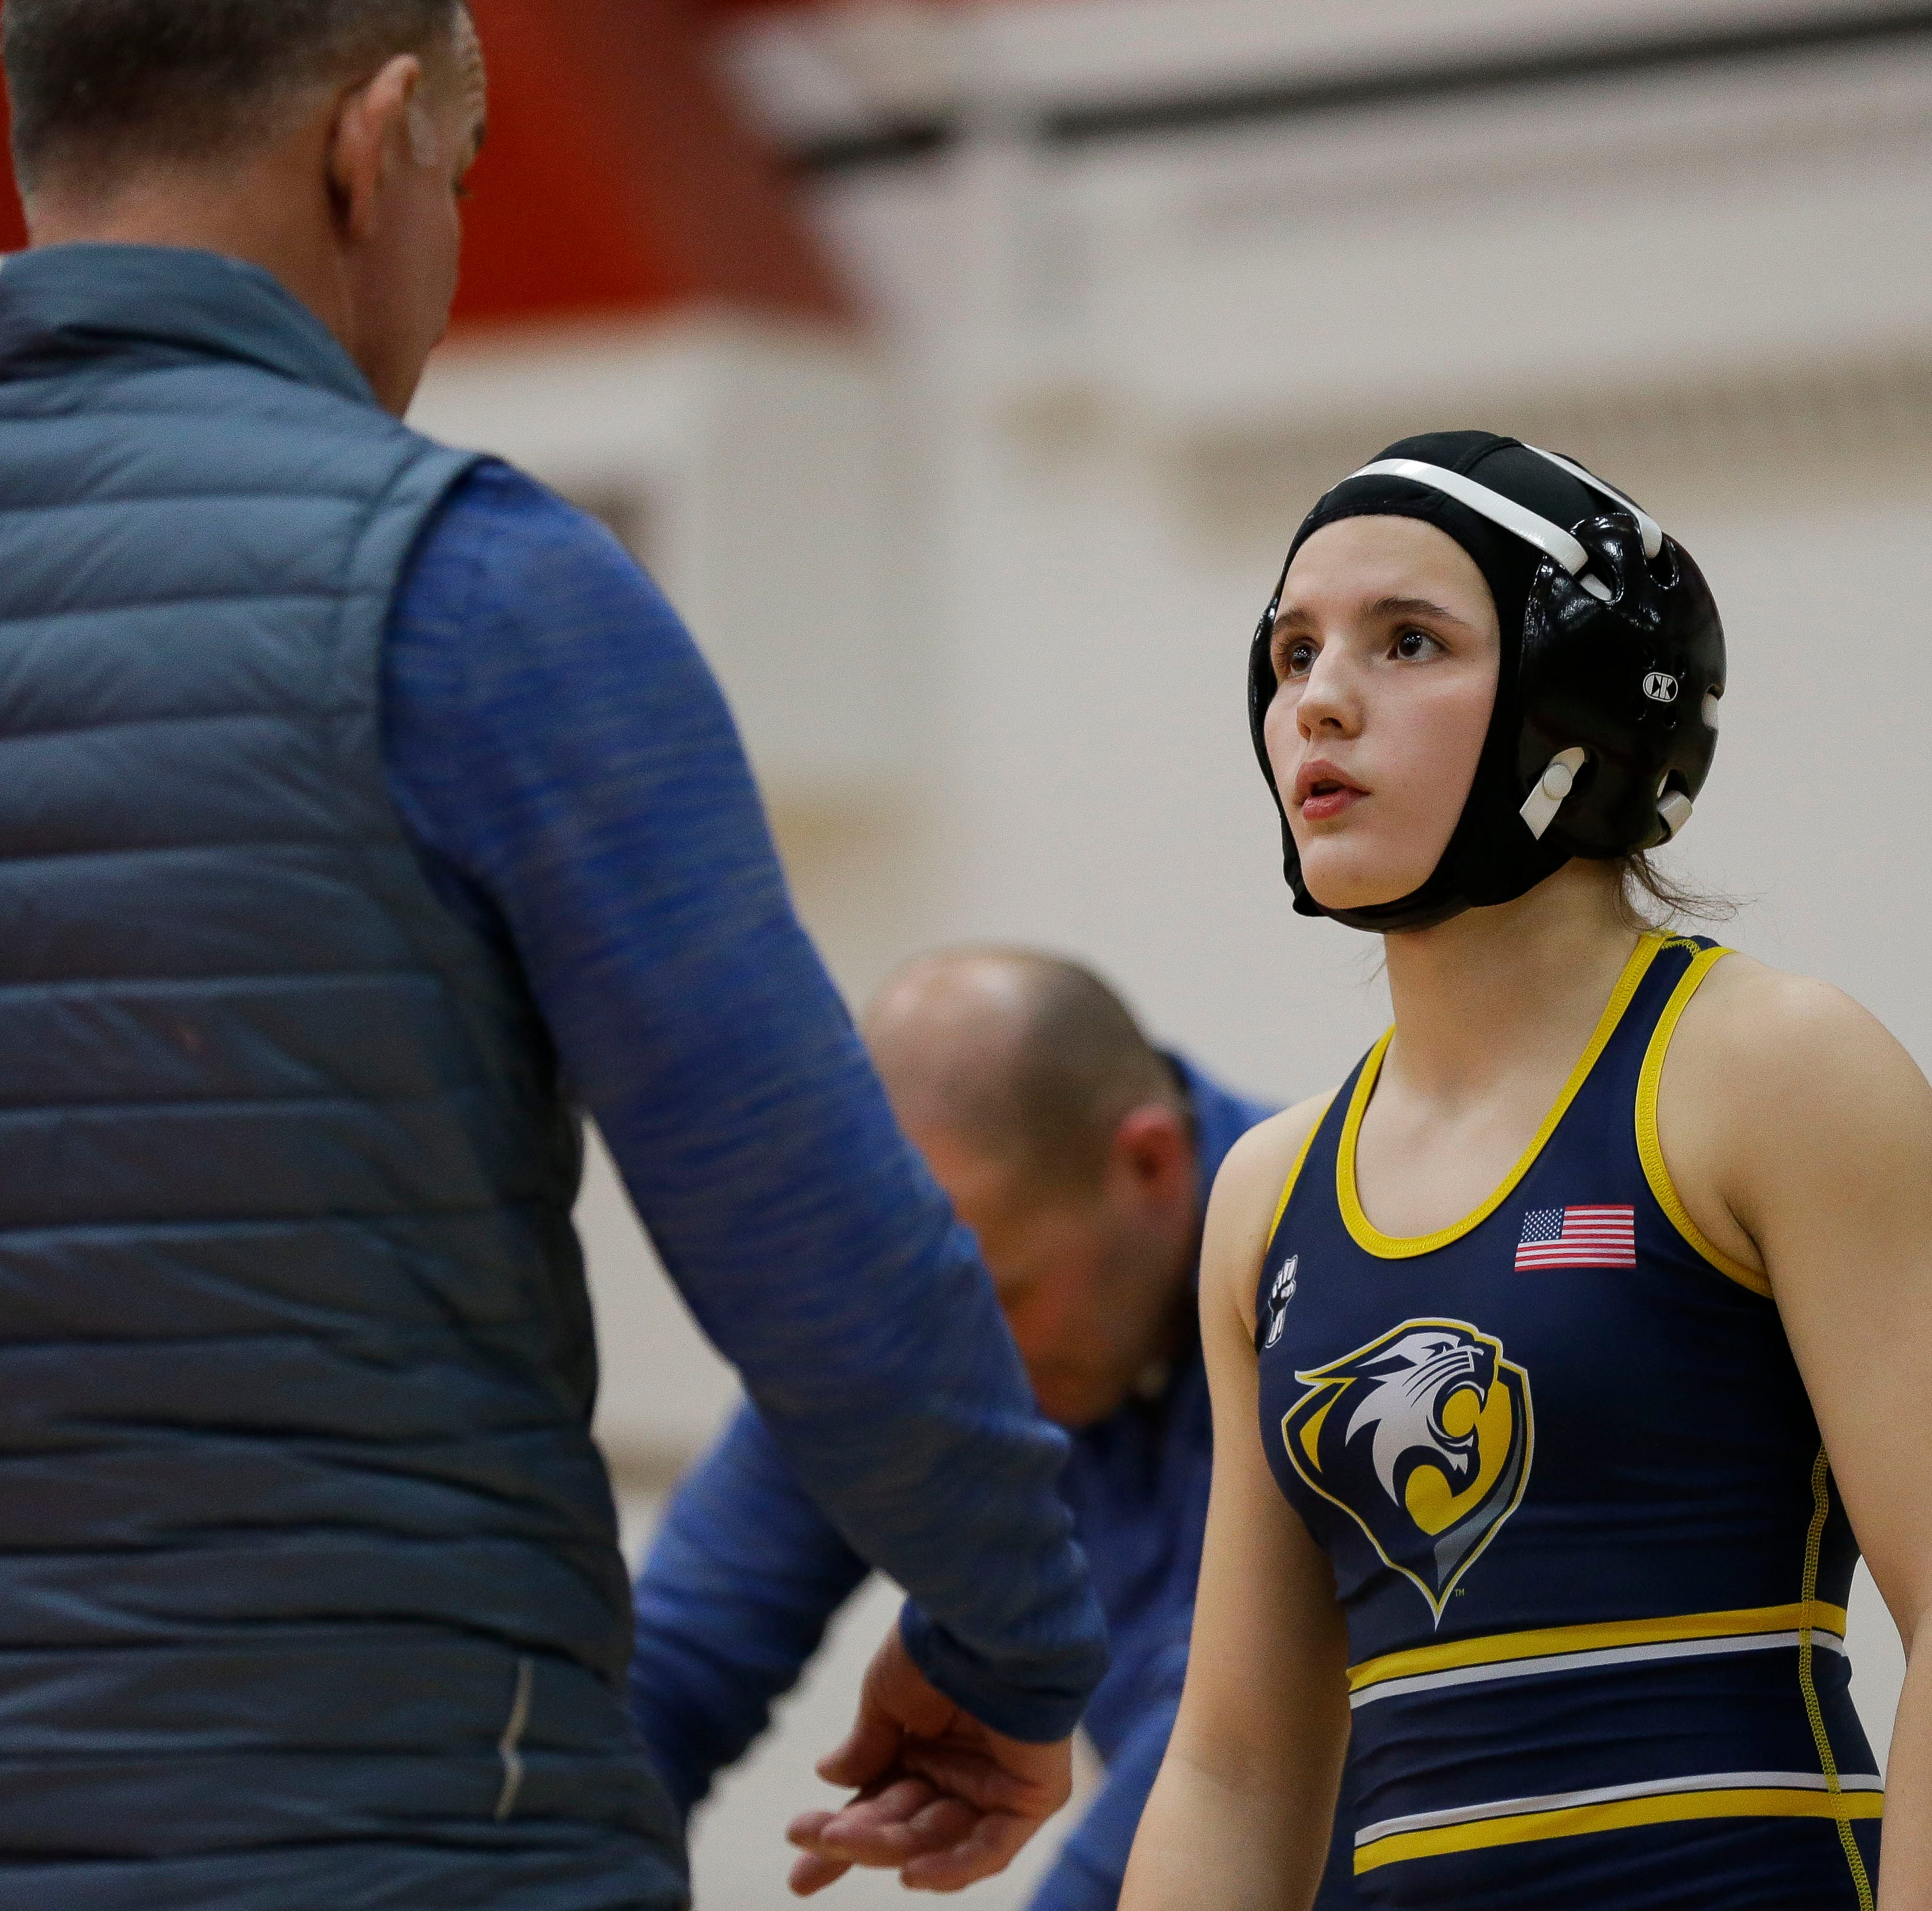 Wausau native made wrestling her life. She became first girl to win Wisconsin regionals in Division 1.